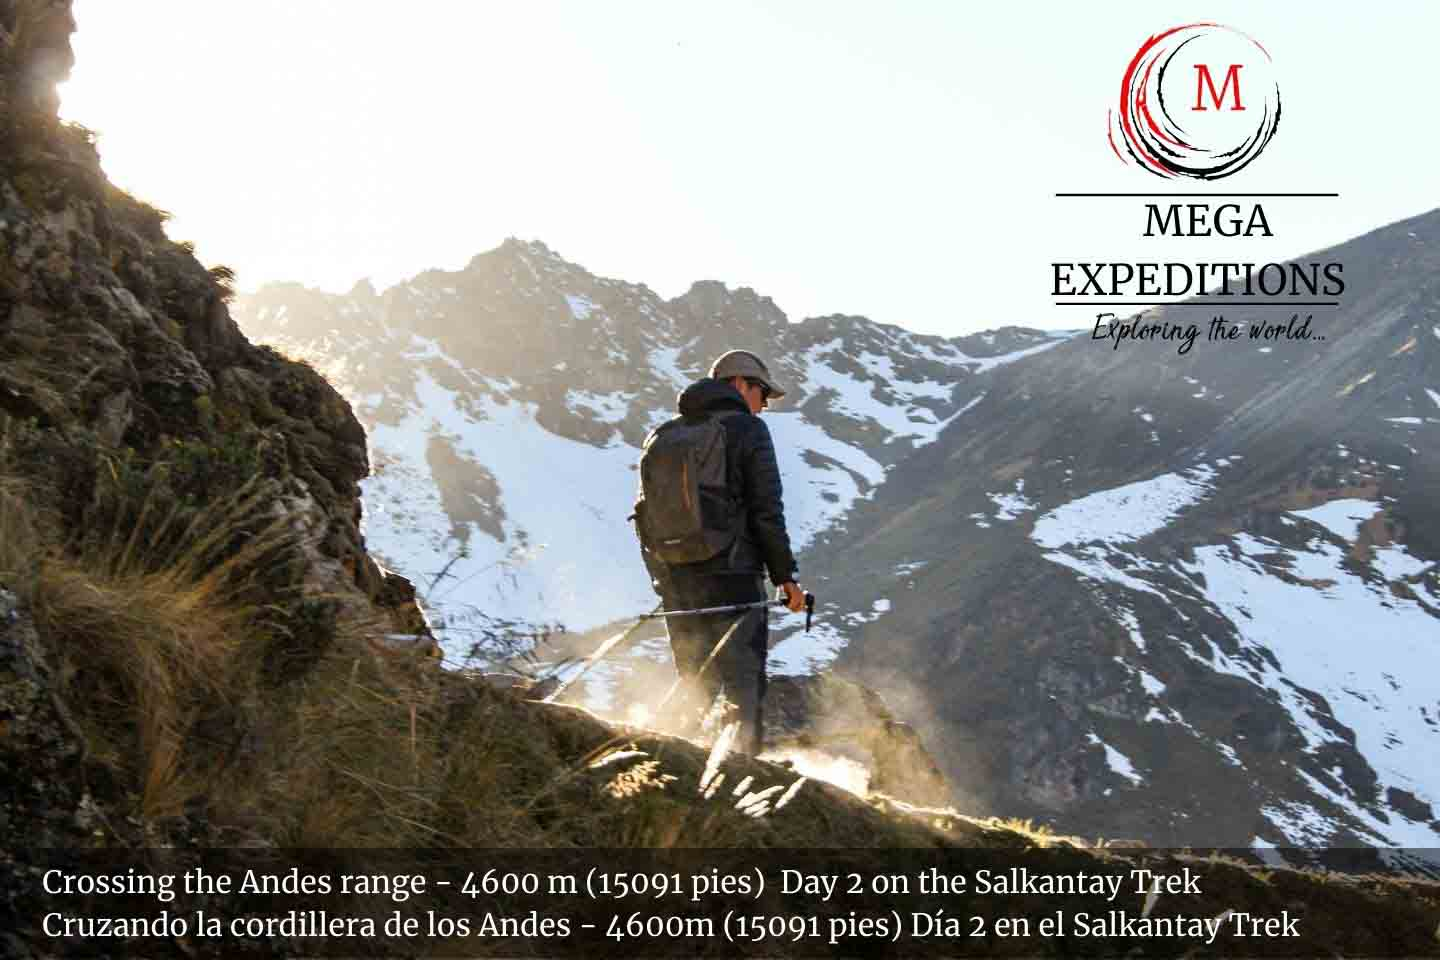 Salkantay Pass - the edge of the Andes Range